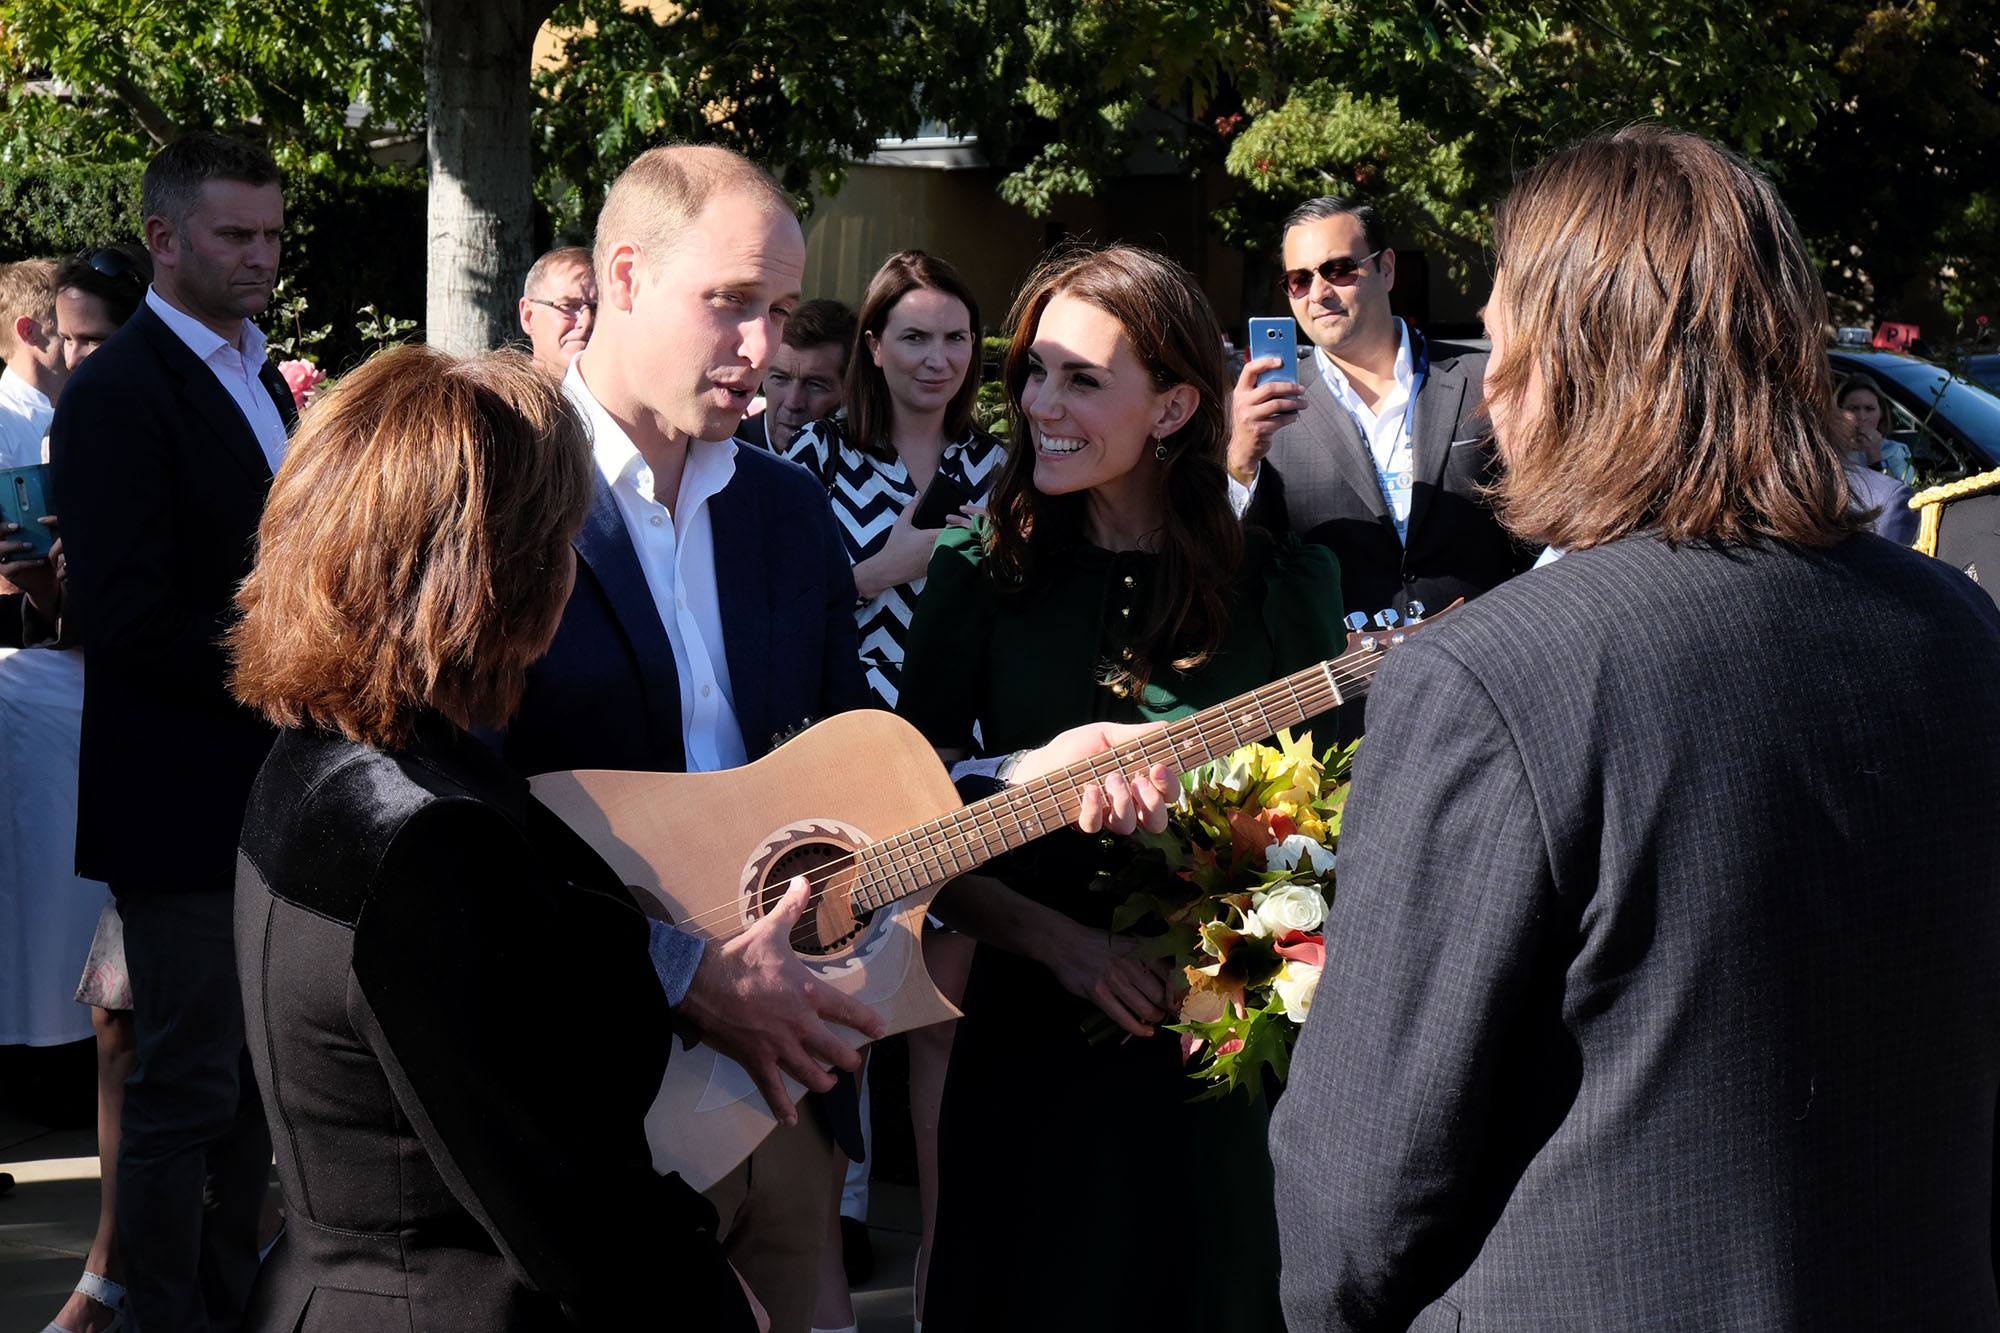 Prince William receives a guitar from Riversong Guitars in Kamloops during the royal tour of BC in 2016 (Province of BC)